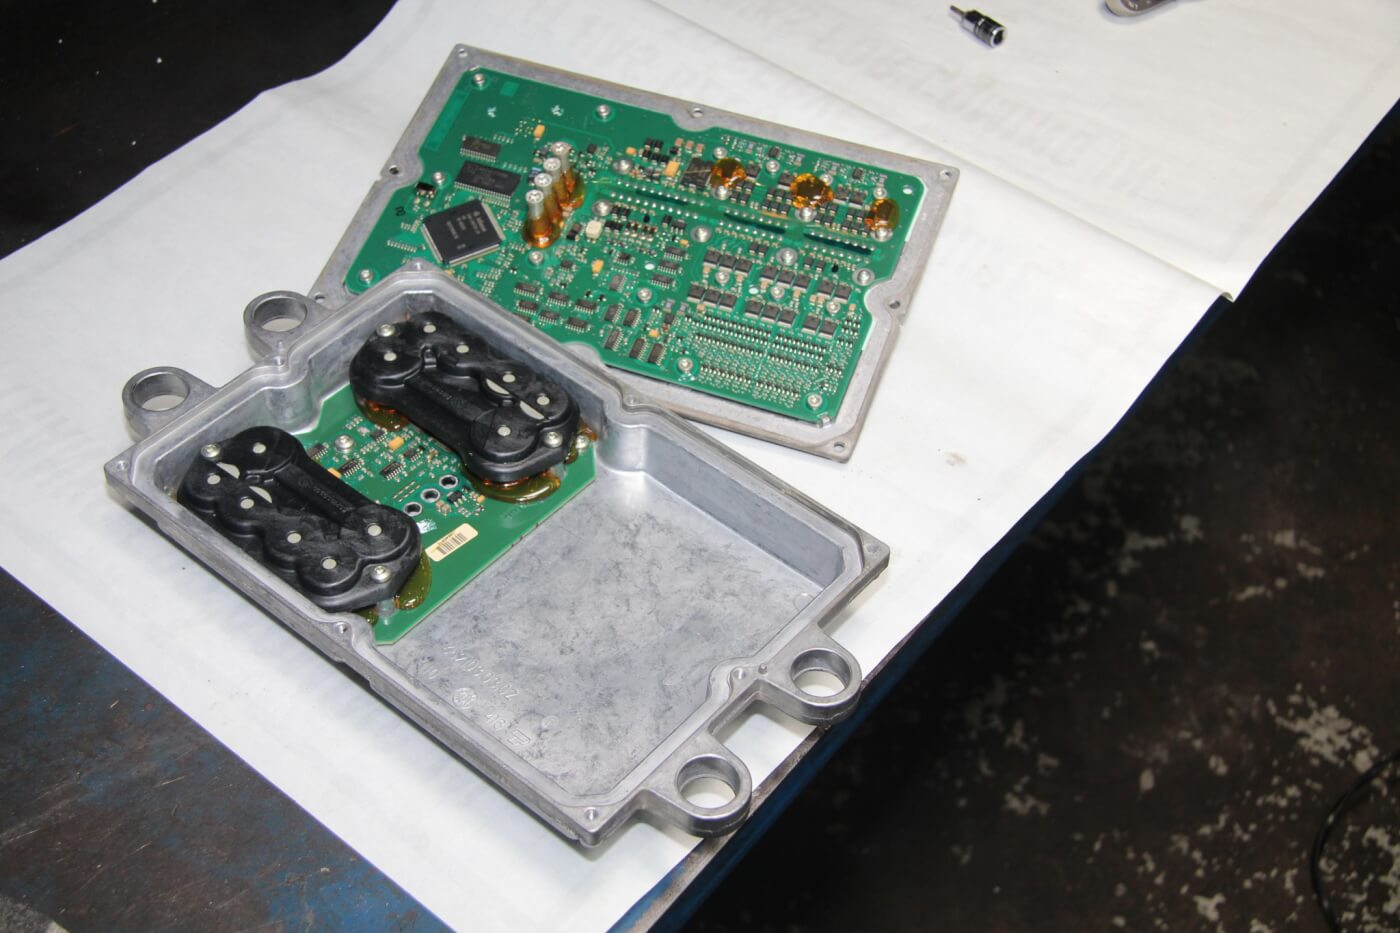 7. This is the inside of a stock FICM. When upgrading just the power supply, the upper half of the case and the control board are retained. Replacing the entire unit is always an option, but more often than not it's the power supply, rather than the control board, that's the source of the problem.